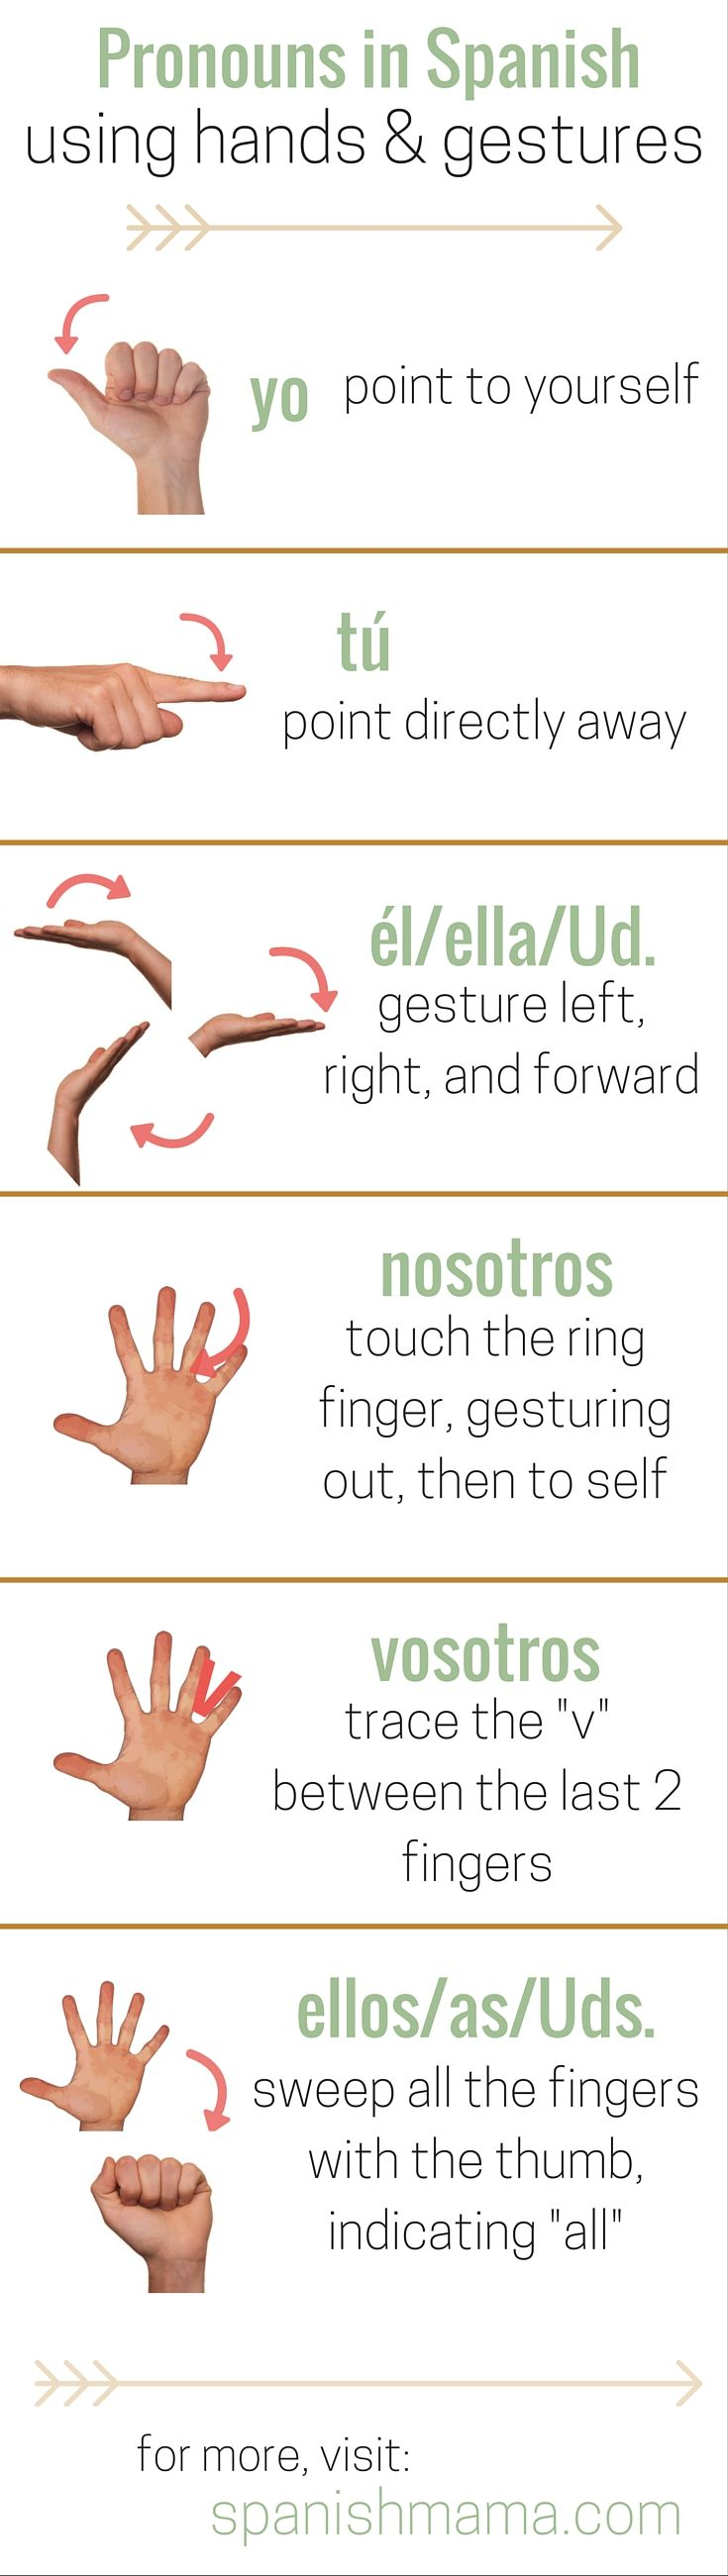 """Concrete, """"hands-on"""" way to teach and practice the pronouns in Spanish. Assign a pronoun to each finger, and use a gesture with that finger each time you say the pronoun. When the pronouns are internalized, use this for verbs as well."""